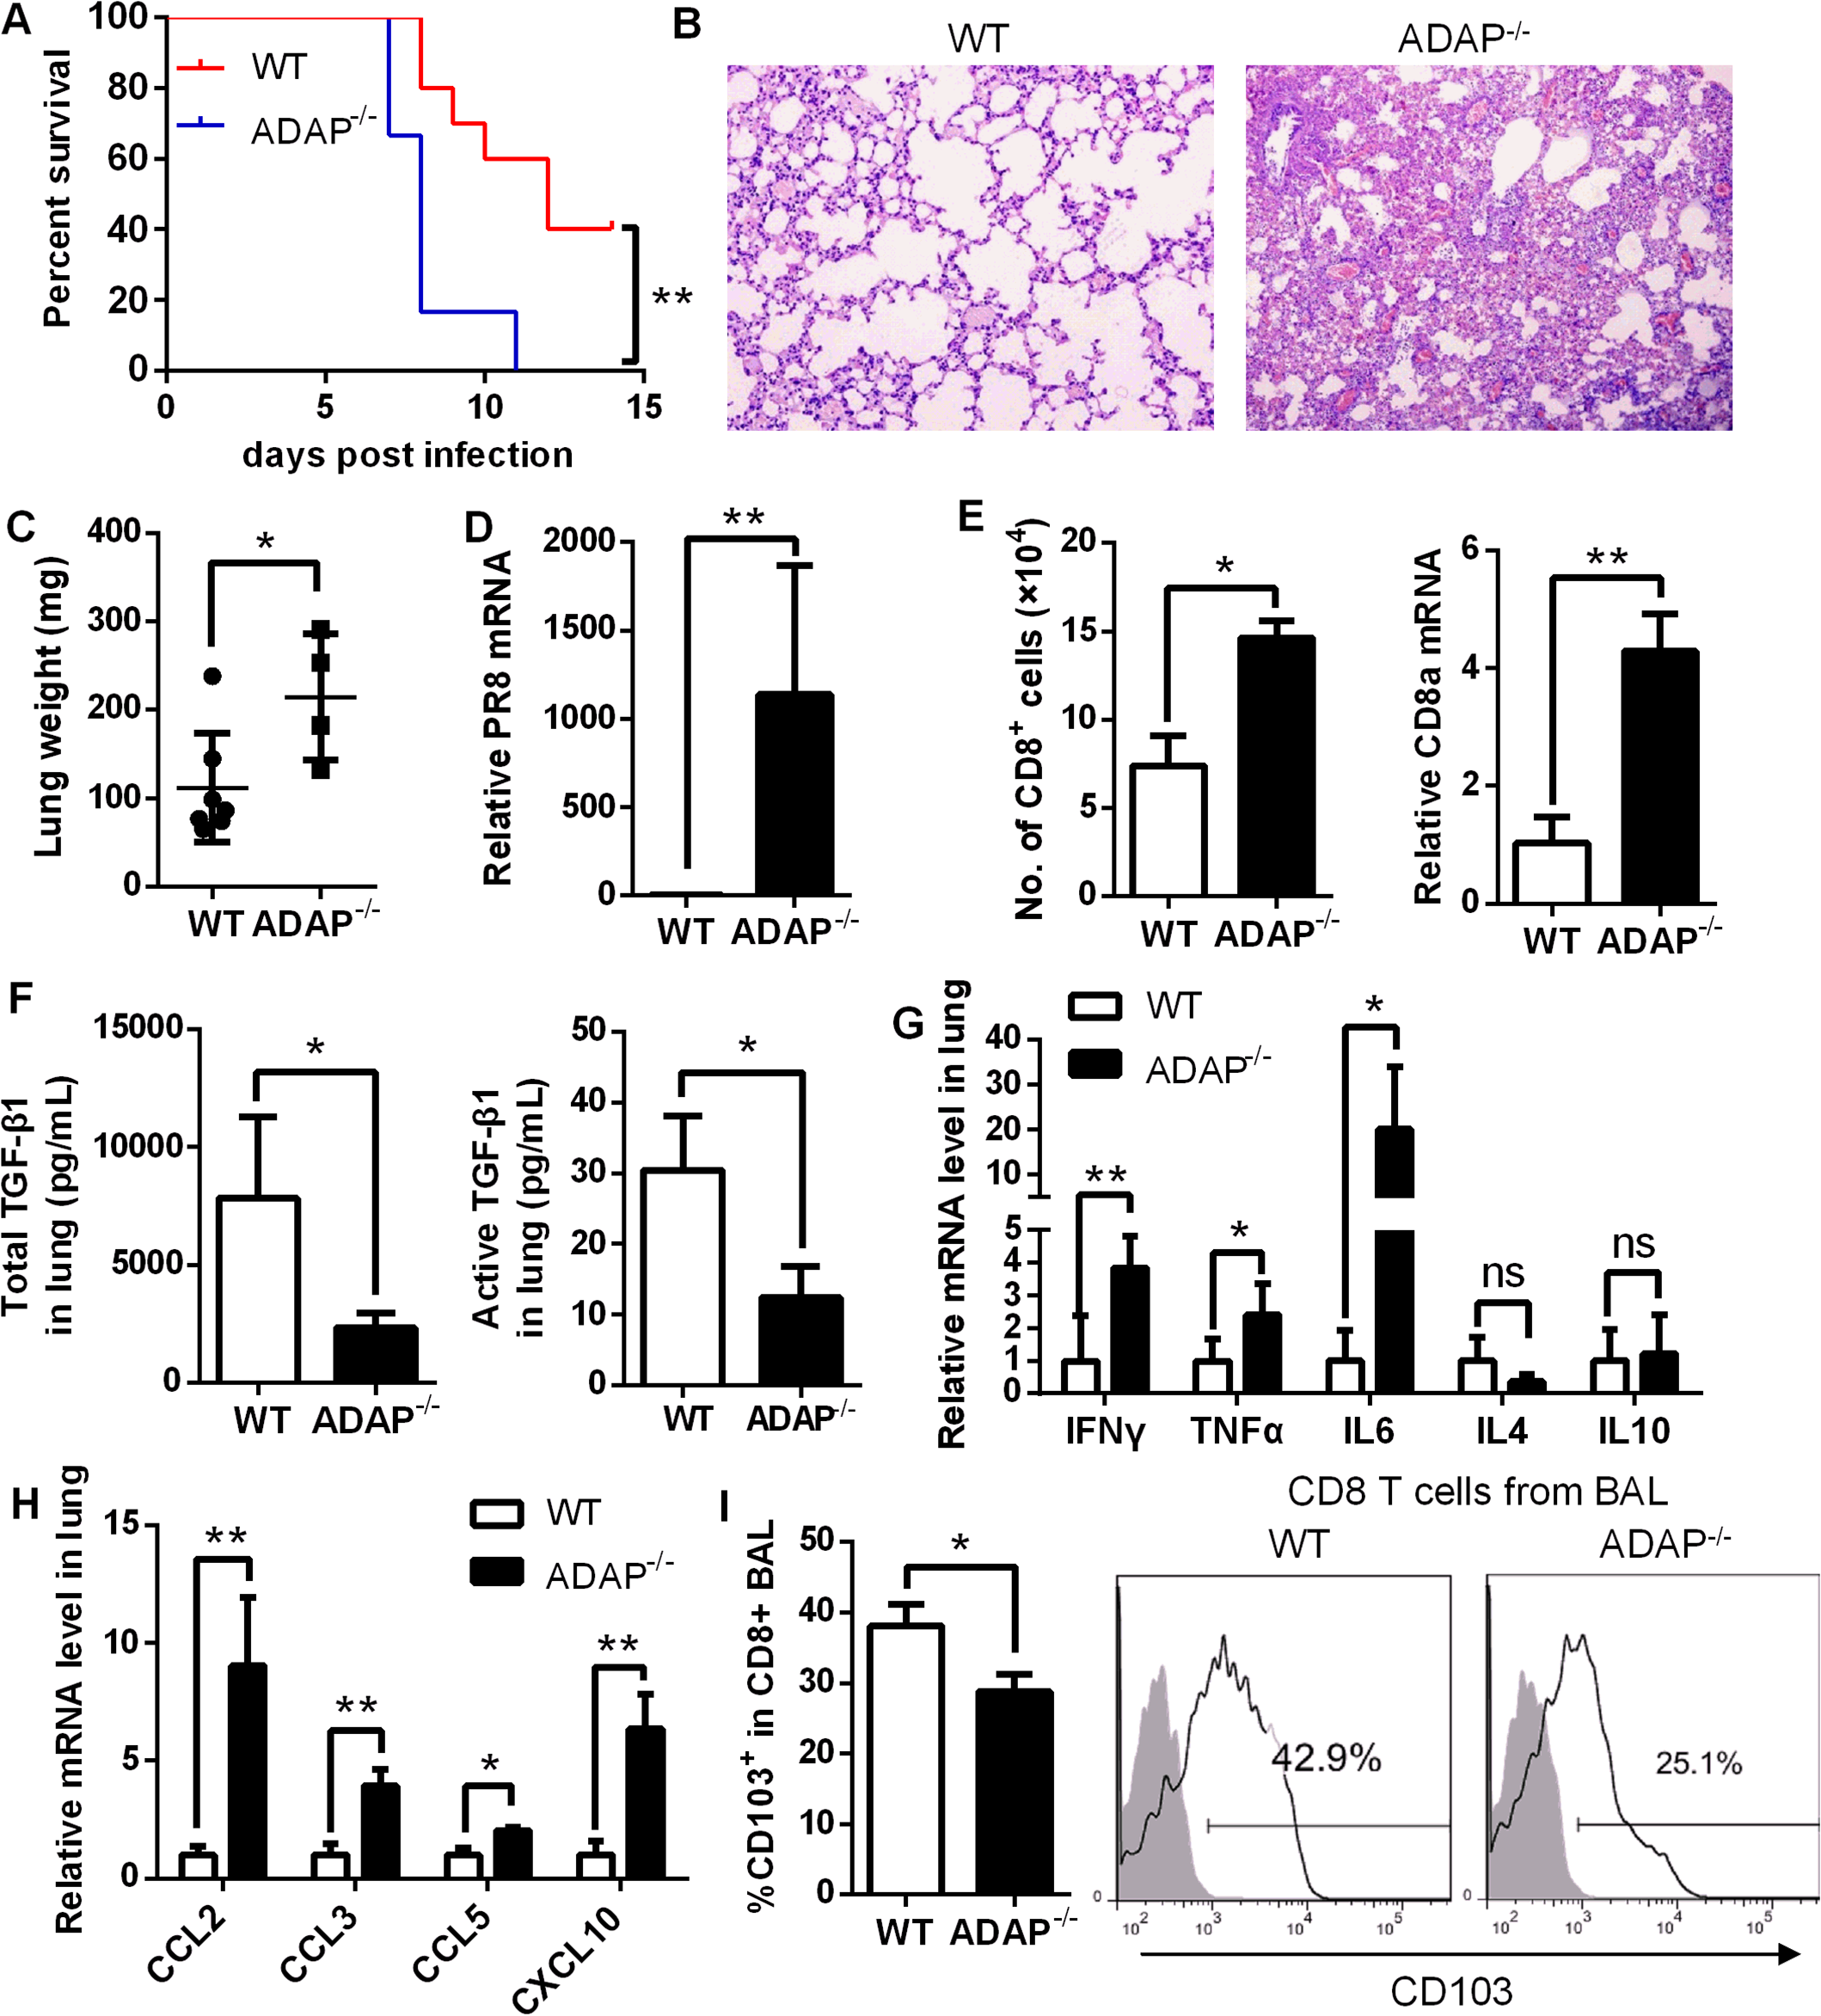 ADAP<sup>-/-</sup> mice enhanced mortality with defective expression of TGF-β1 and CD103 in response to H1N1 infection.